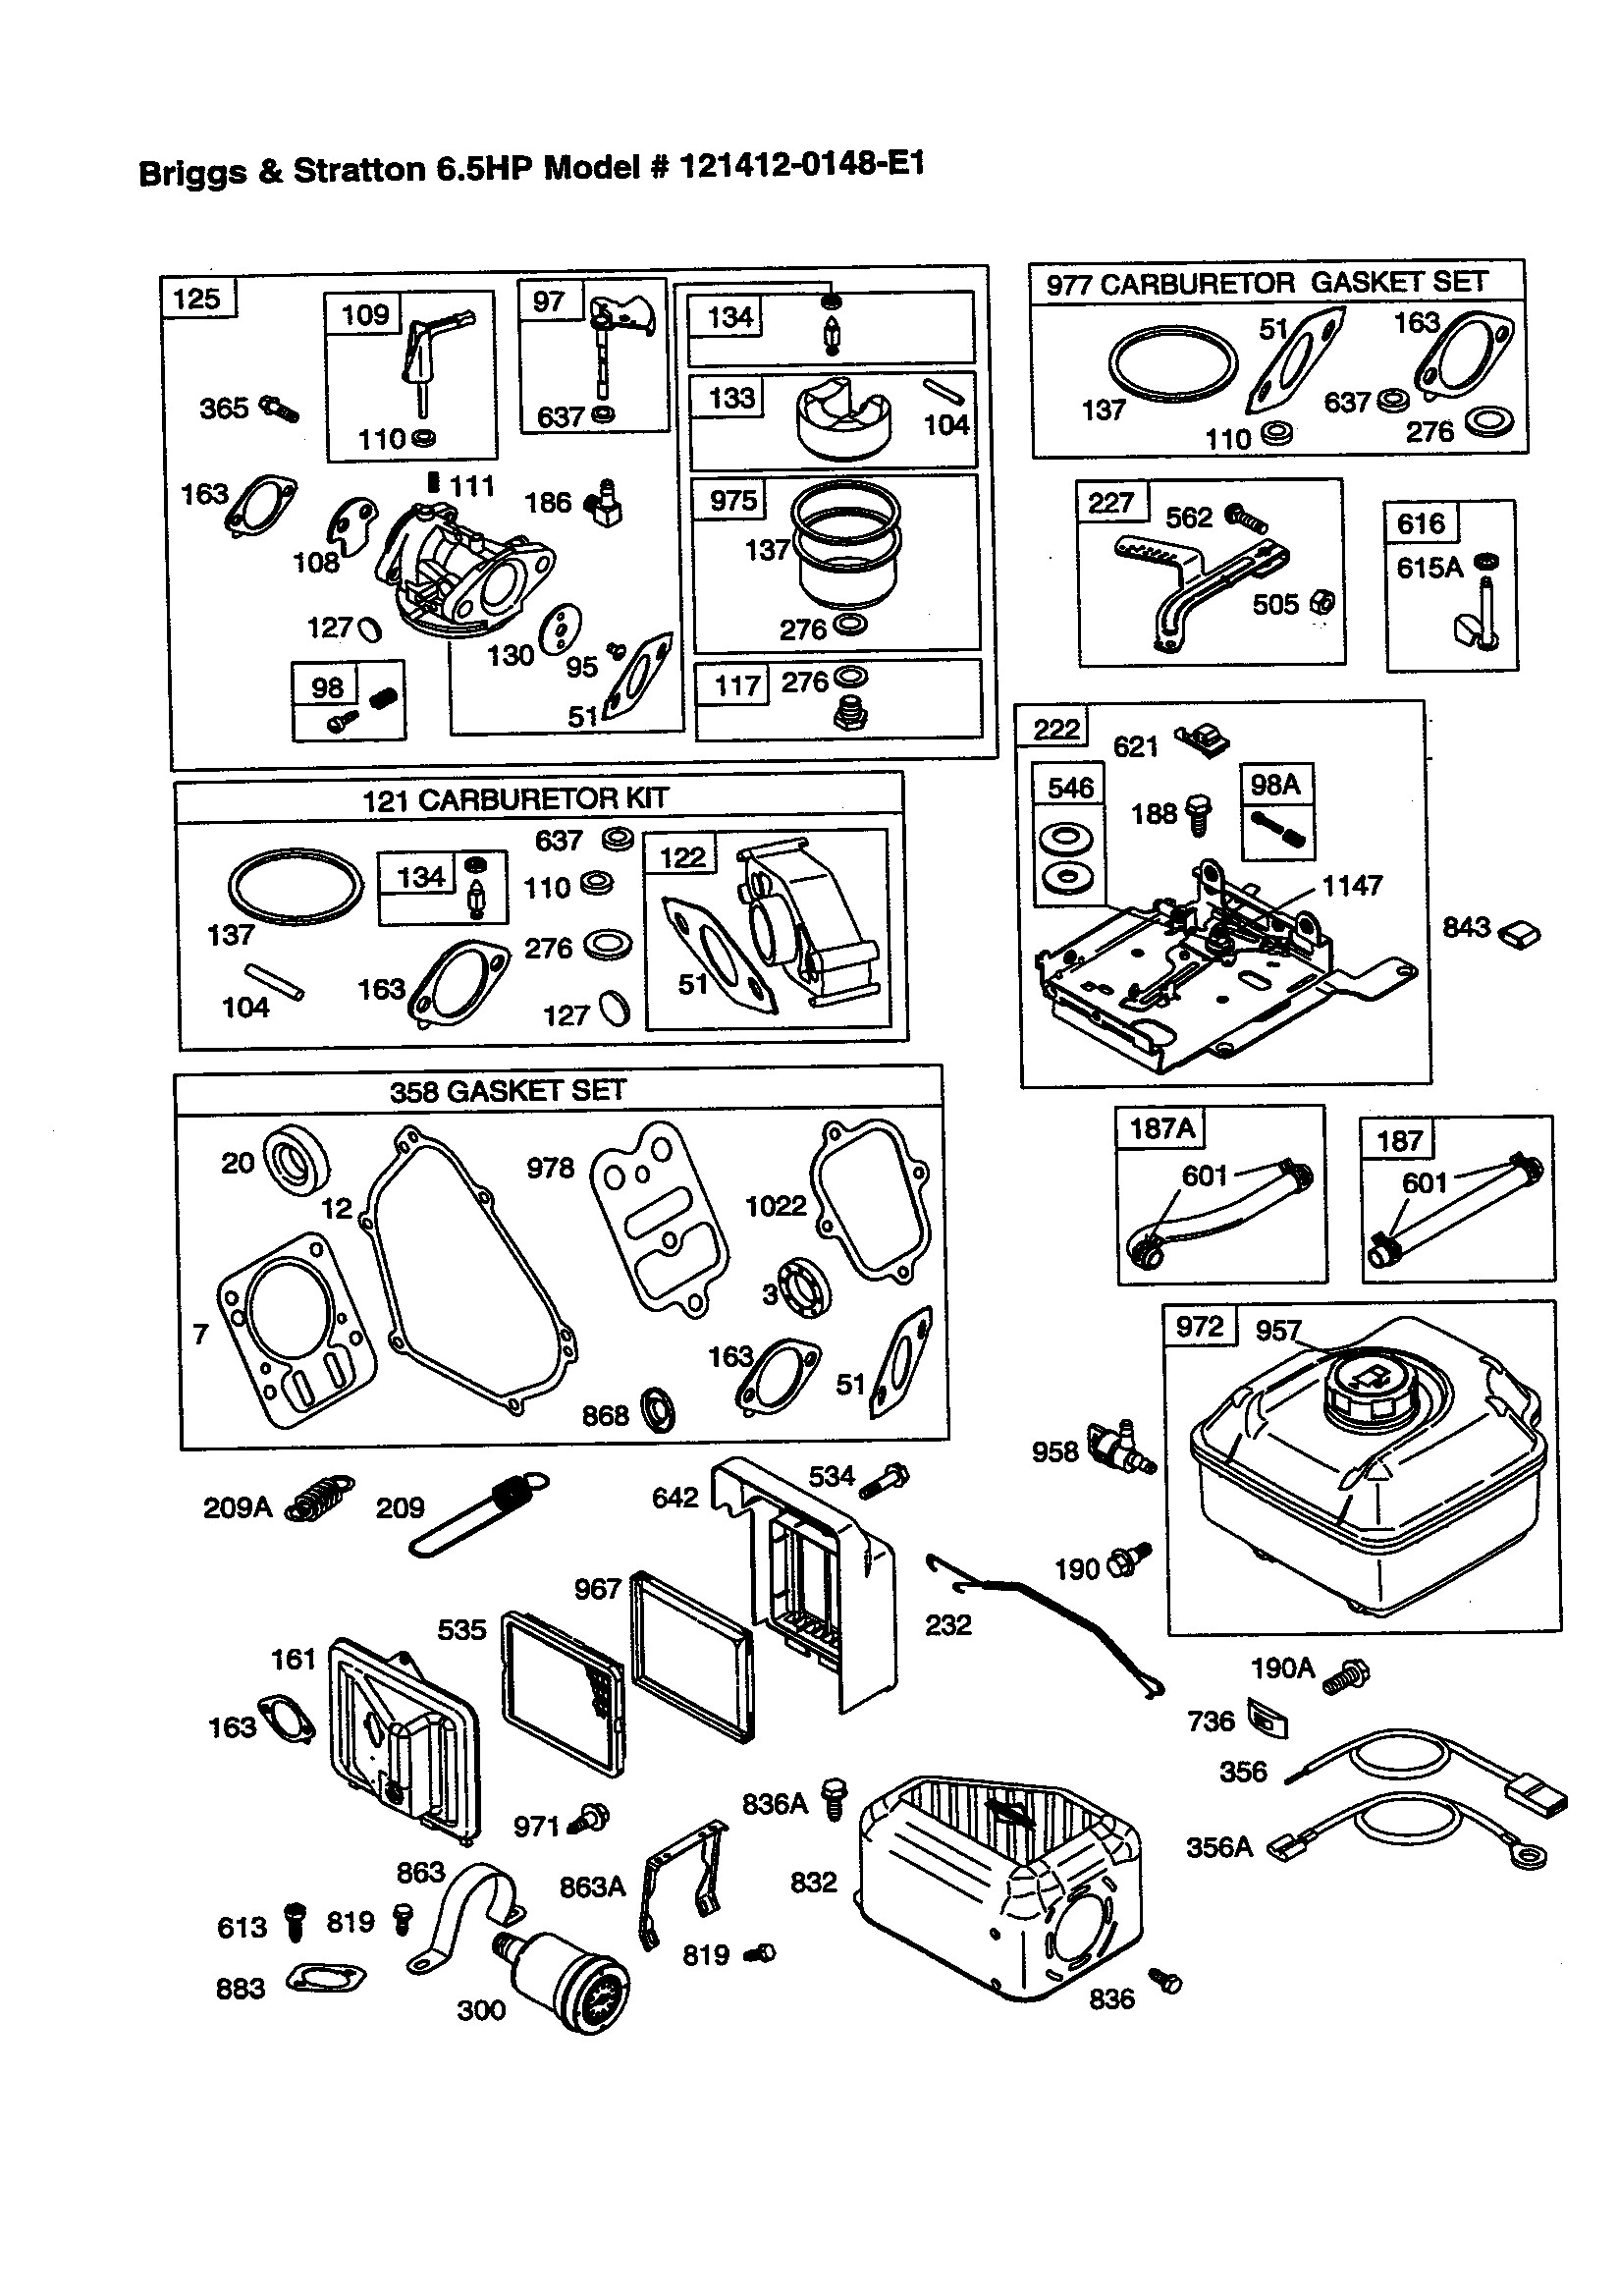 Briggs and Stratton Lawn Mower Engine Parts Diagram Fancy Briggs and Stratton Engine Parts Diagram Vignette Electrical Of Briggs and Stratton Lawn Mower Engine Parts Diagram